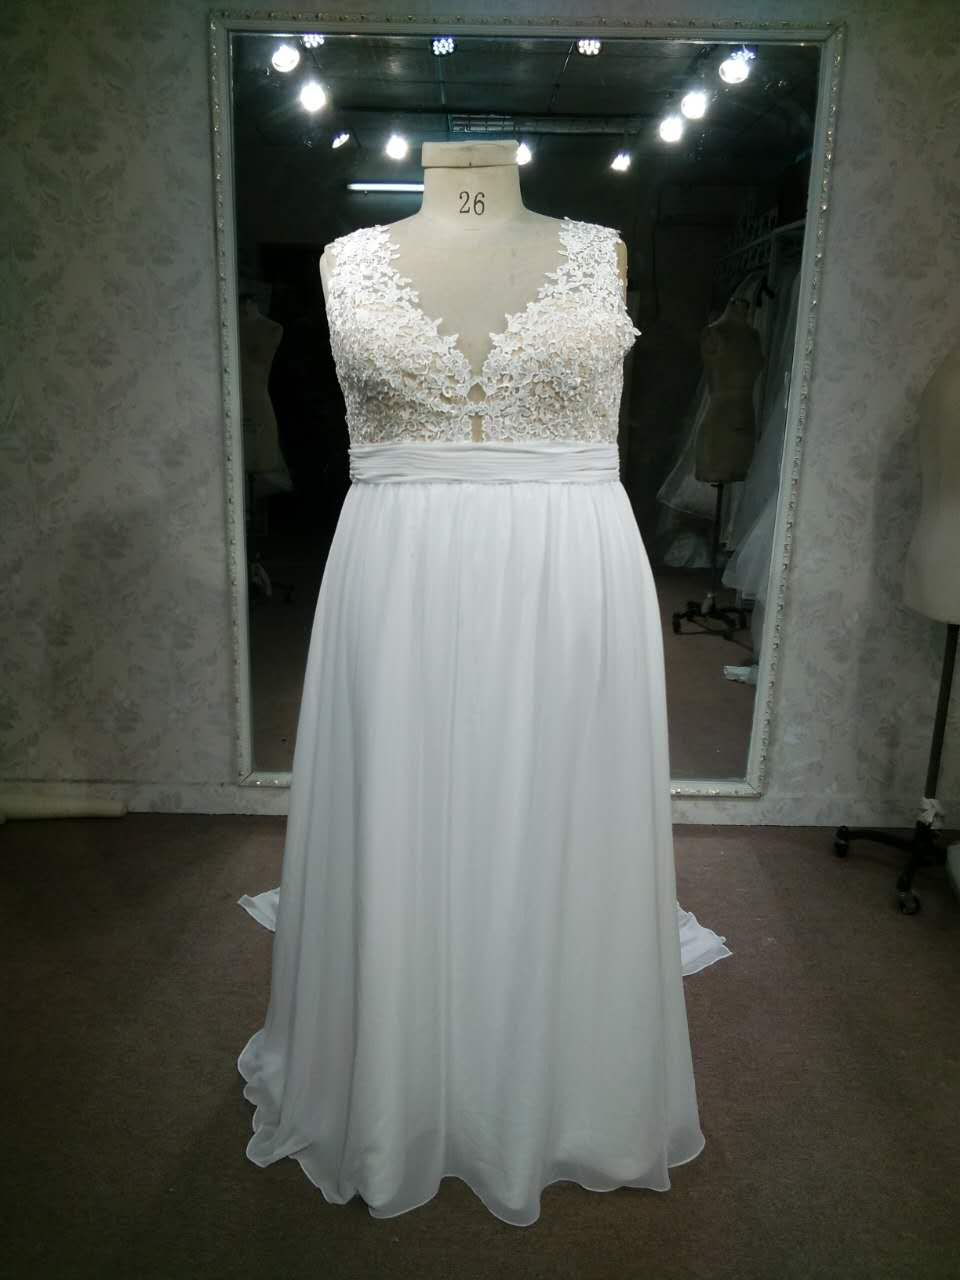 Empire waist plus size wedding gown by Darius Bridal